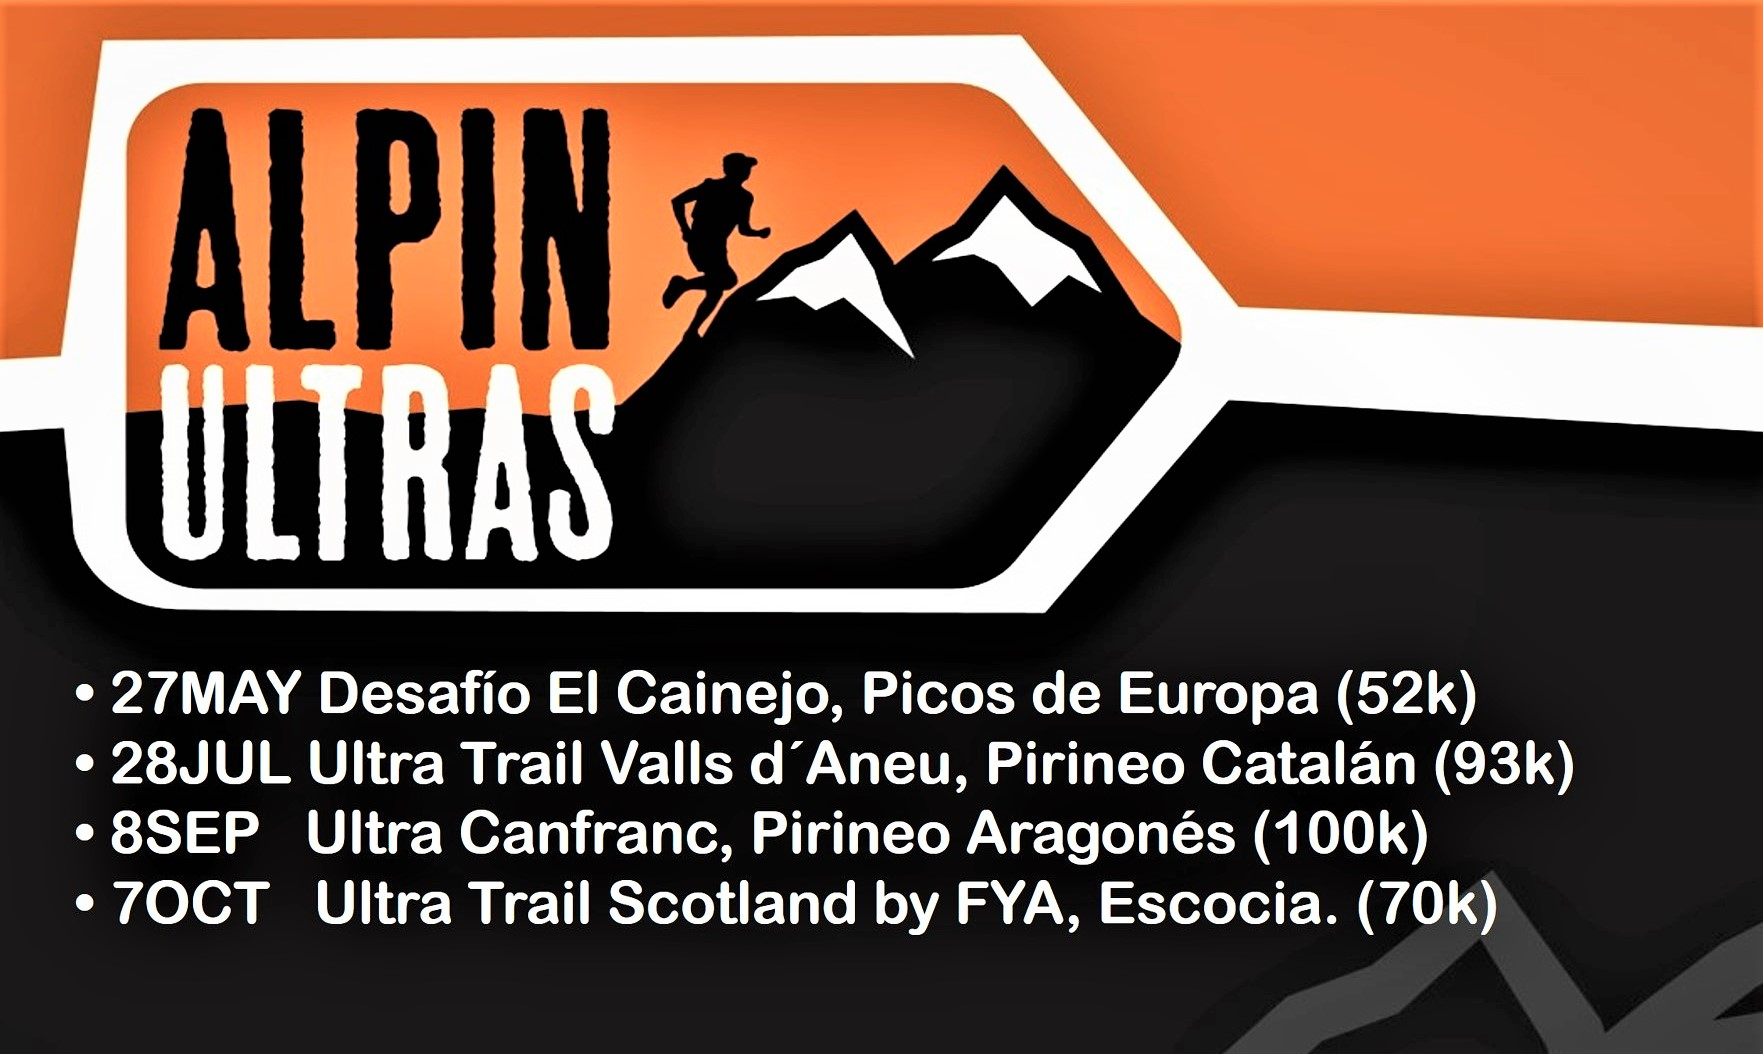 Calendario Ultratrail.Alpinultras 2017 Travels To Scotland For Its First Race